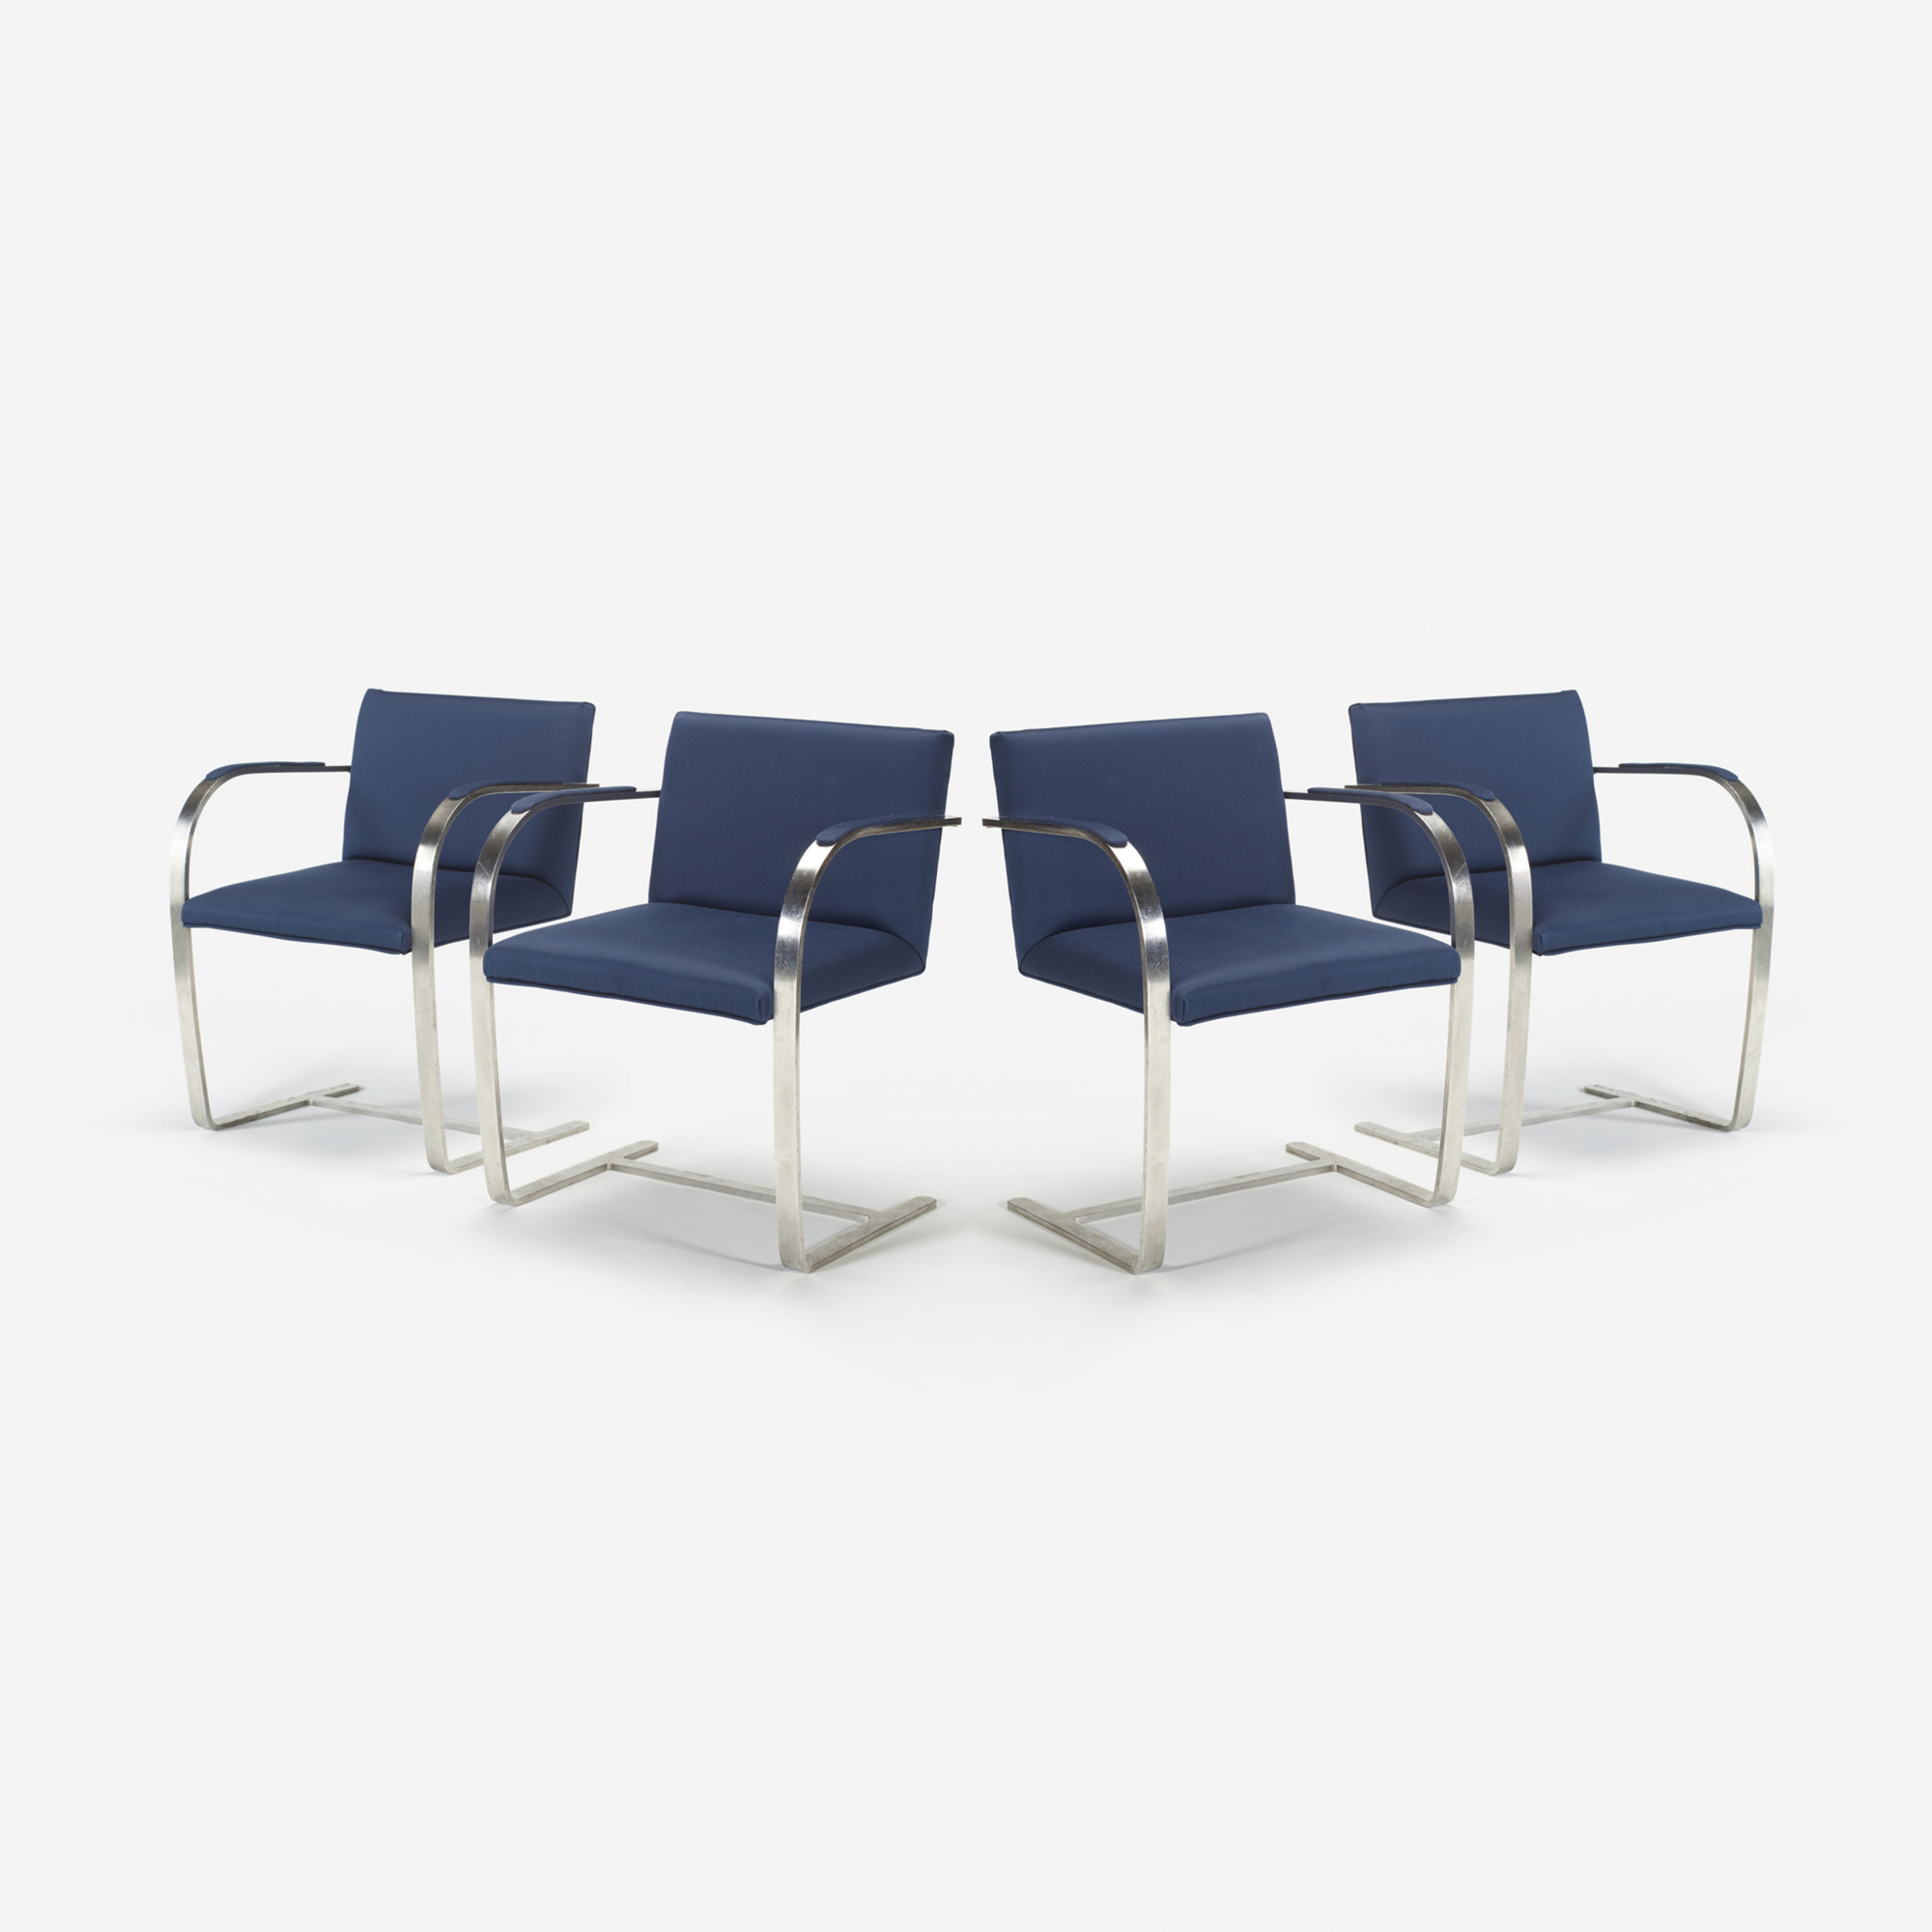 704: Ludwig Mies van der Rohe / Brno chairs from The Four Seasons, set of four (1 of 1)